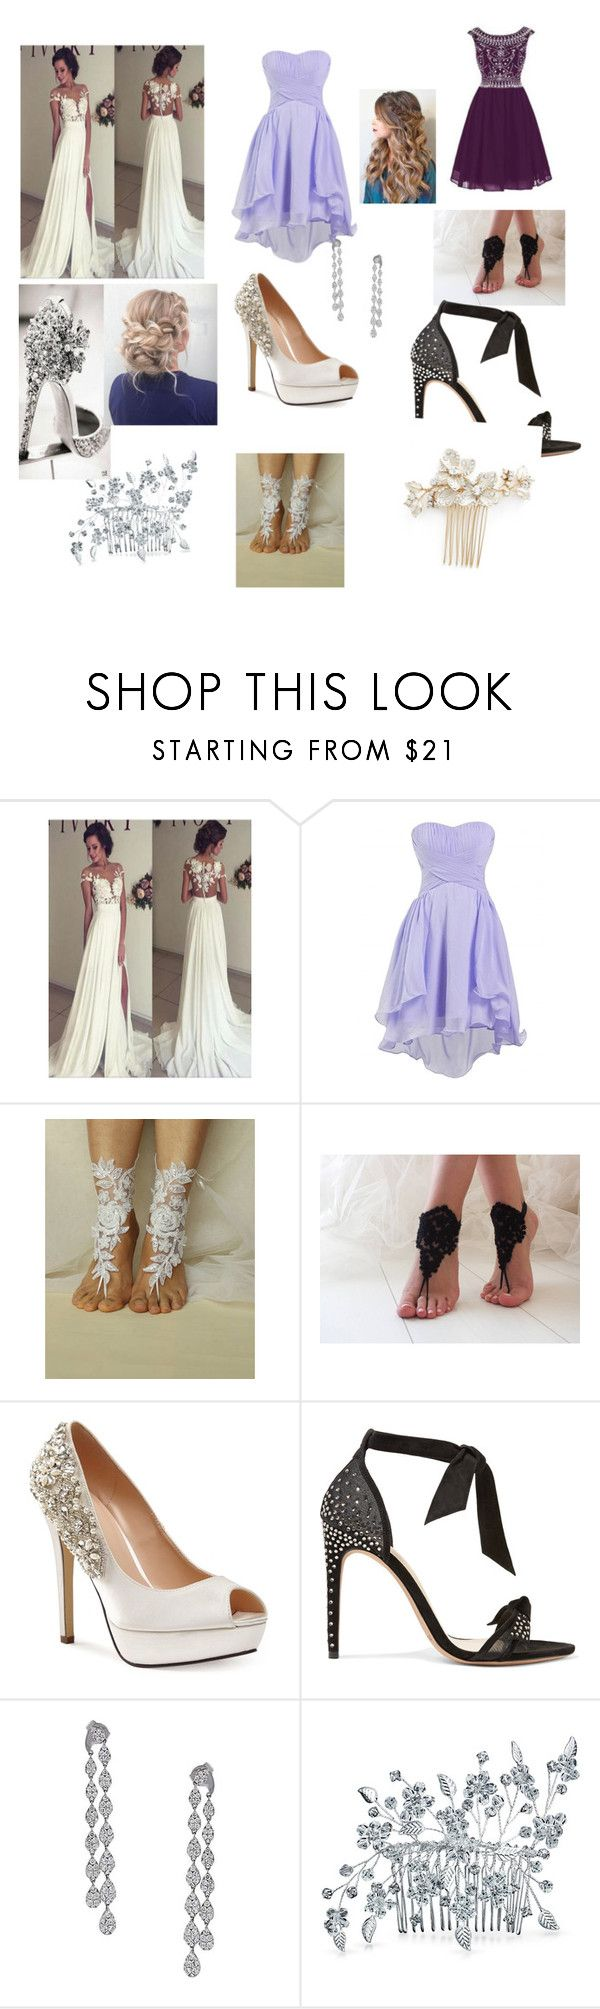 """Untitled #3"" by spring-robertson ❤ liked on Polyvore featuring beauty, Pink Paradox London, Alexandre Birman, Bling Jewelry and Wedding Belles New York"